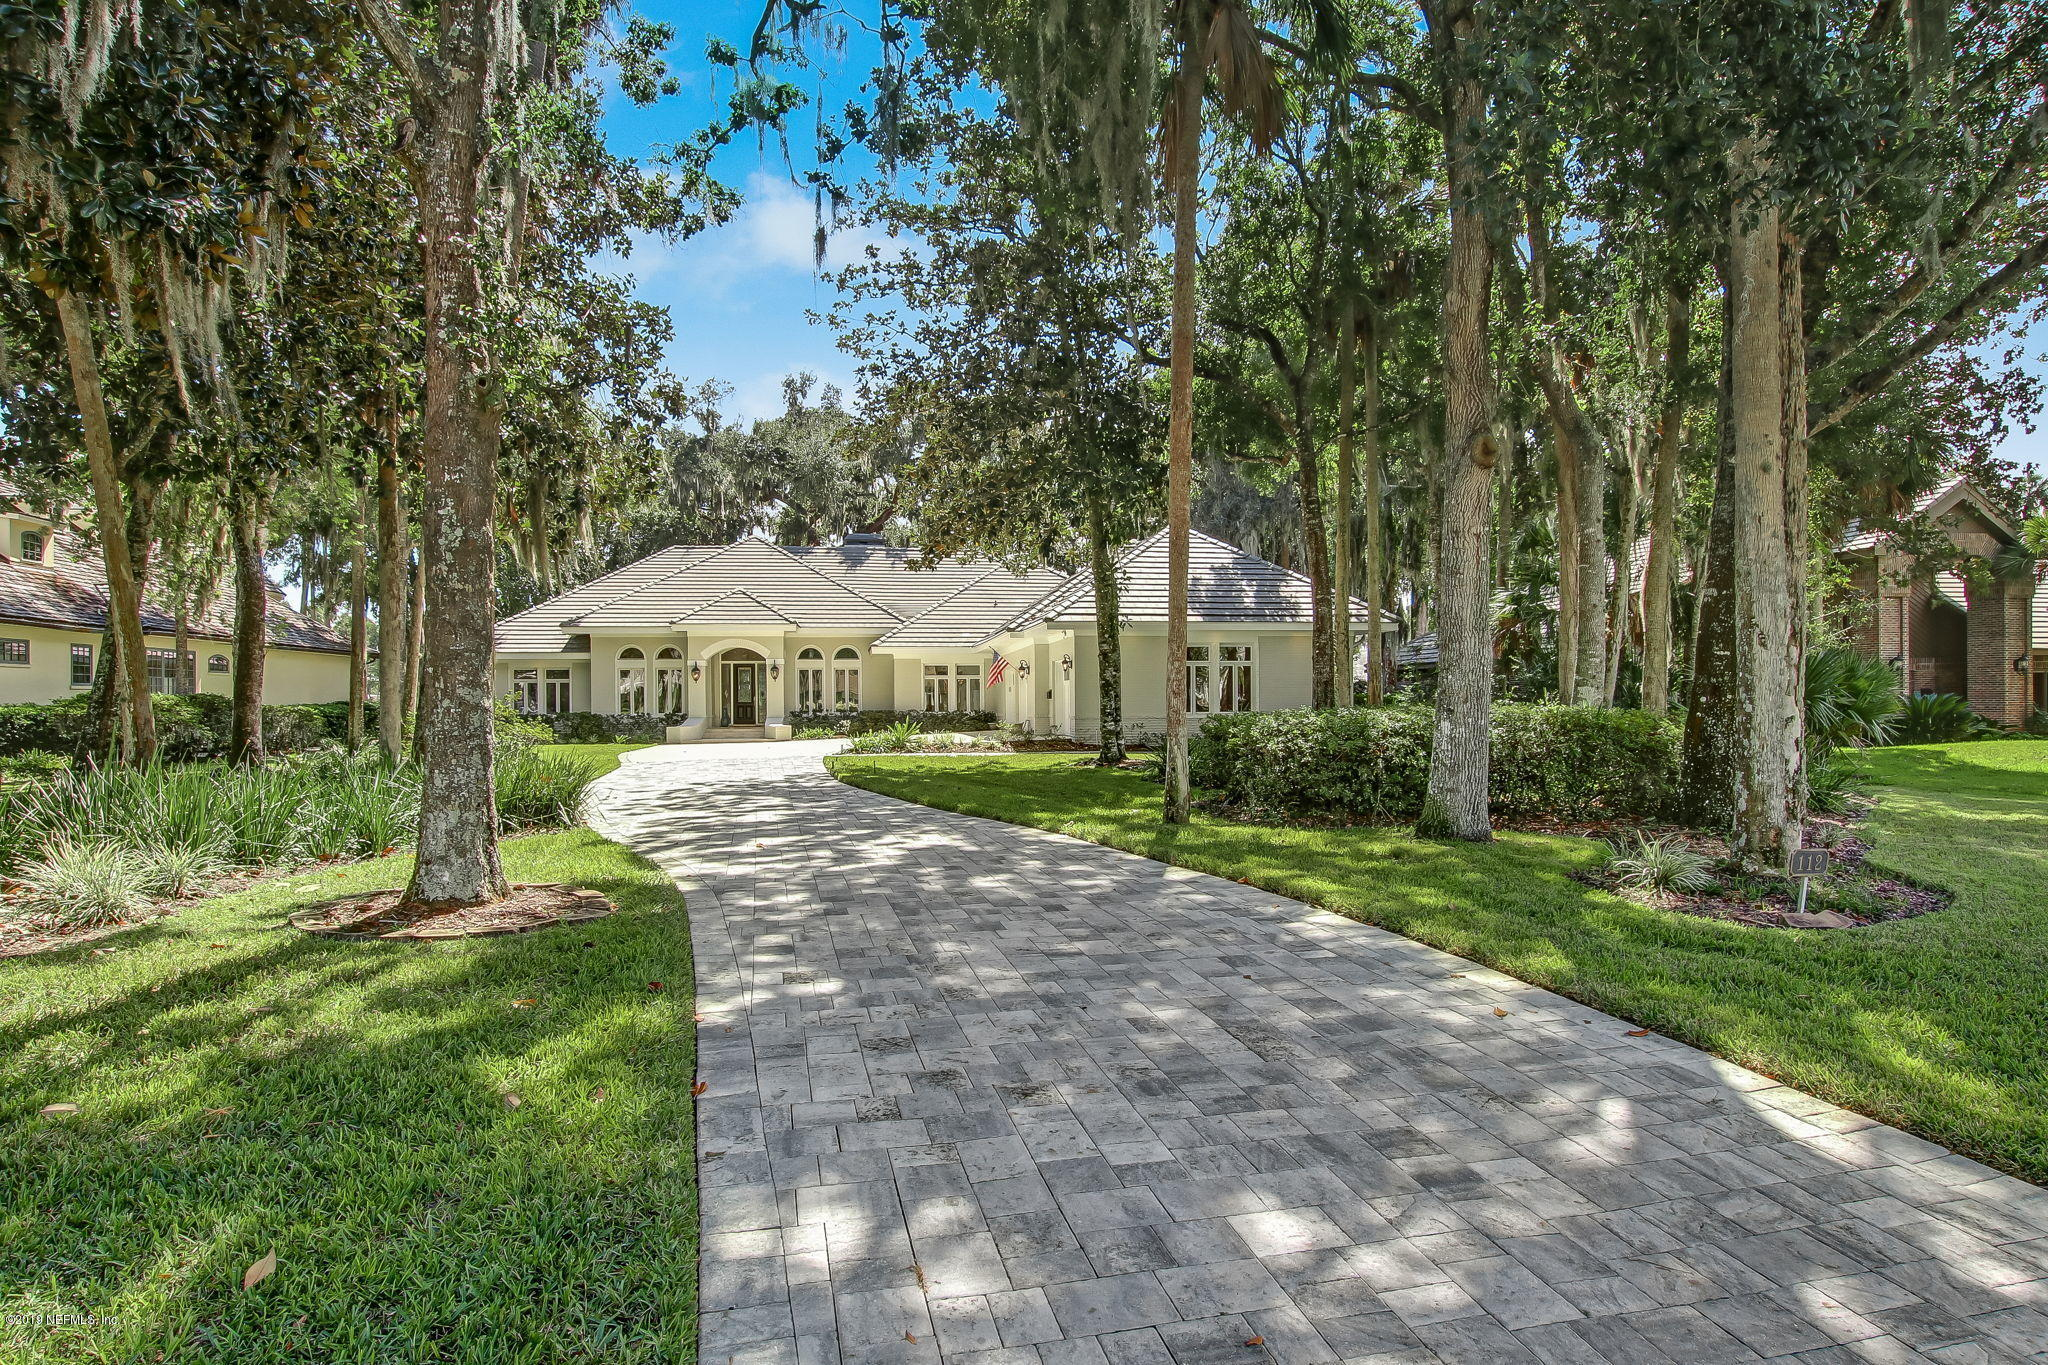 112 PLANTATION, PONTE VEDRA BEACH, FLORIDA 32082, 4 Bedrooms Bedrooms, ,3 BathroomsBathrooms,Residential - single family,For sale,PLANTATION,1018675